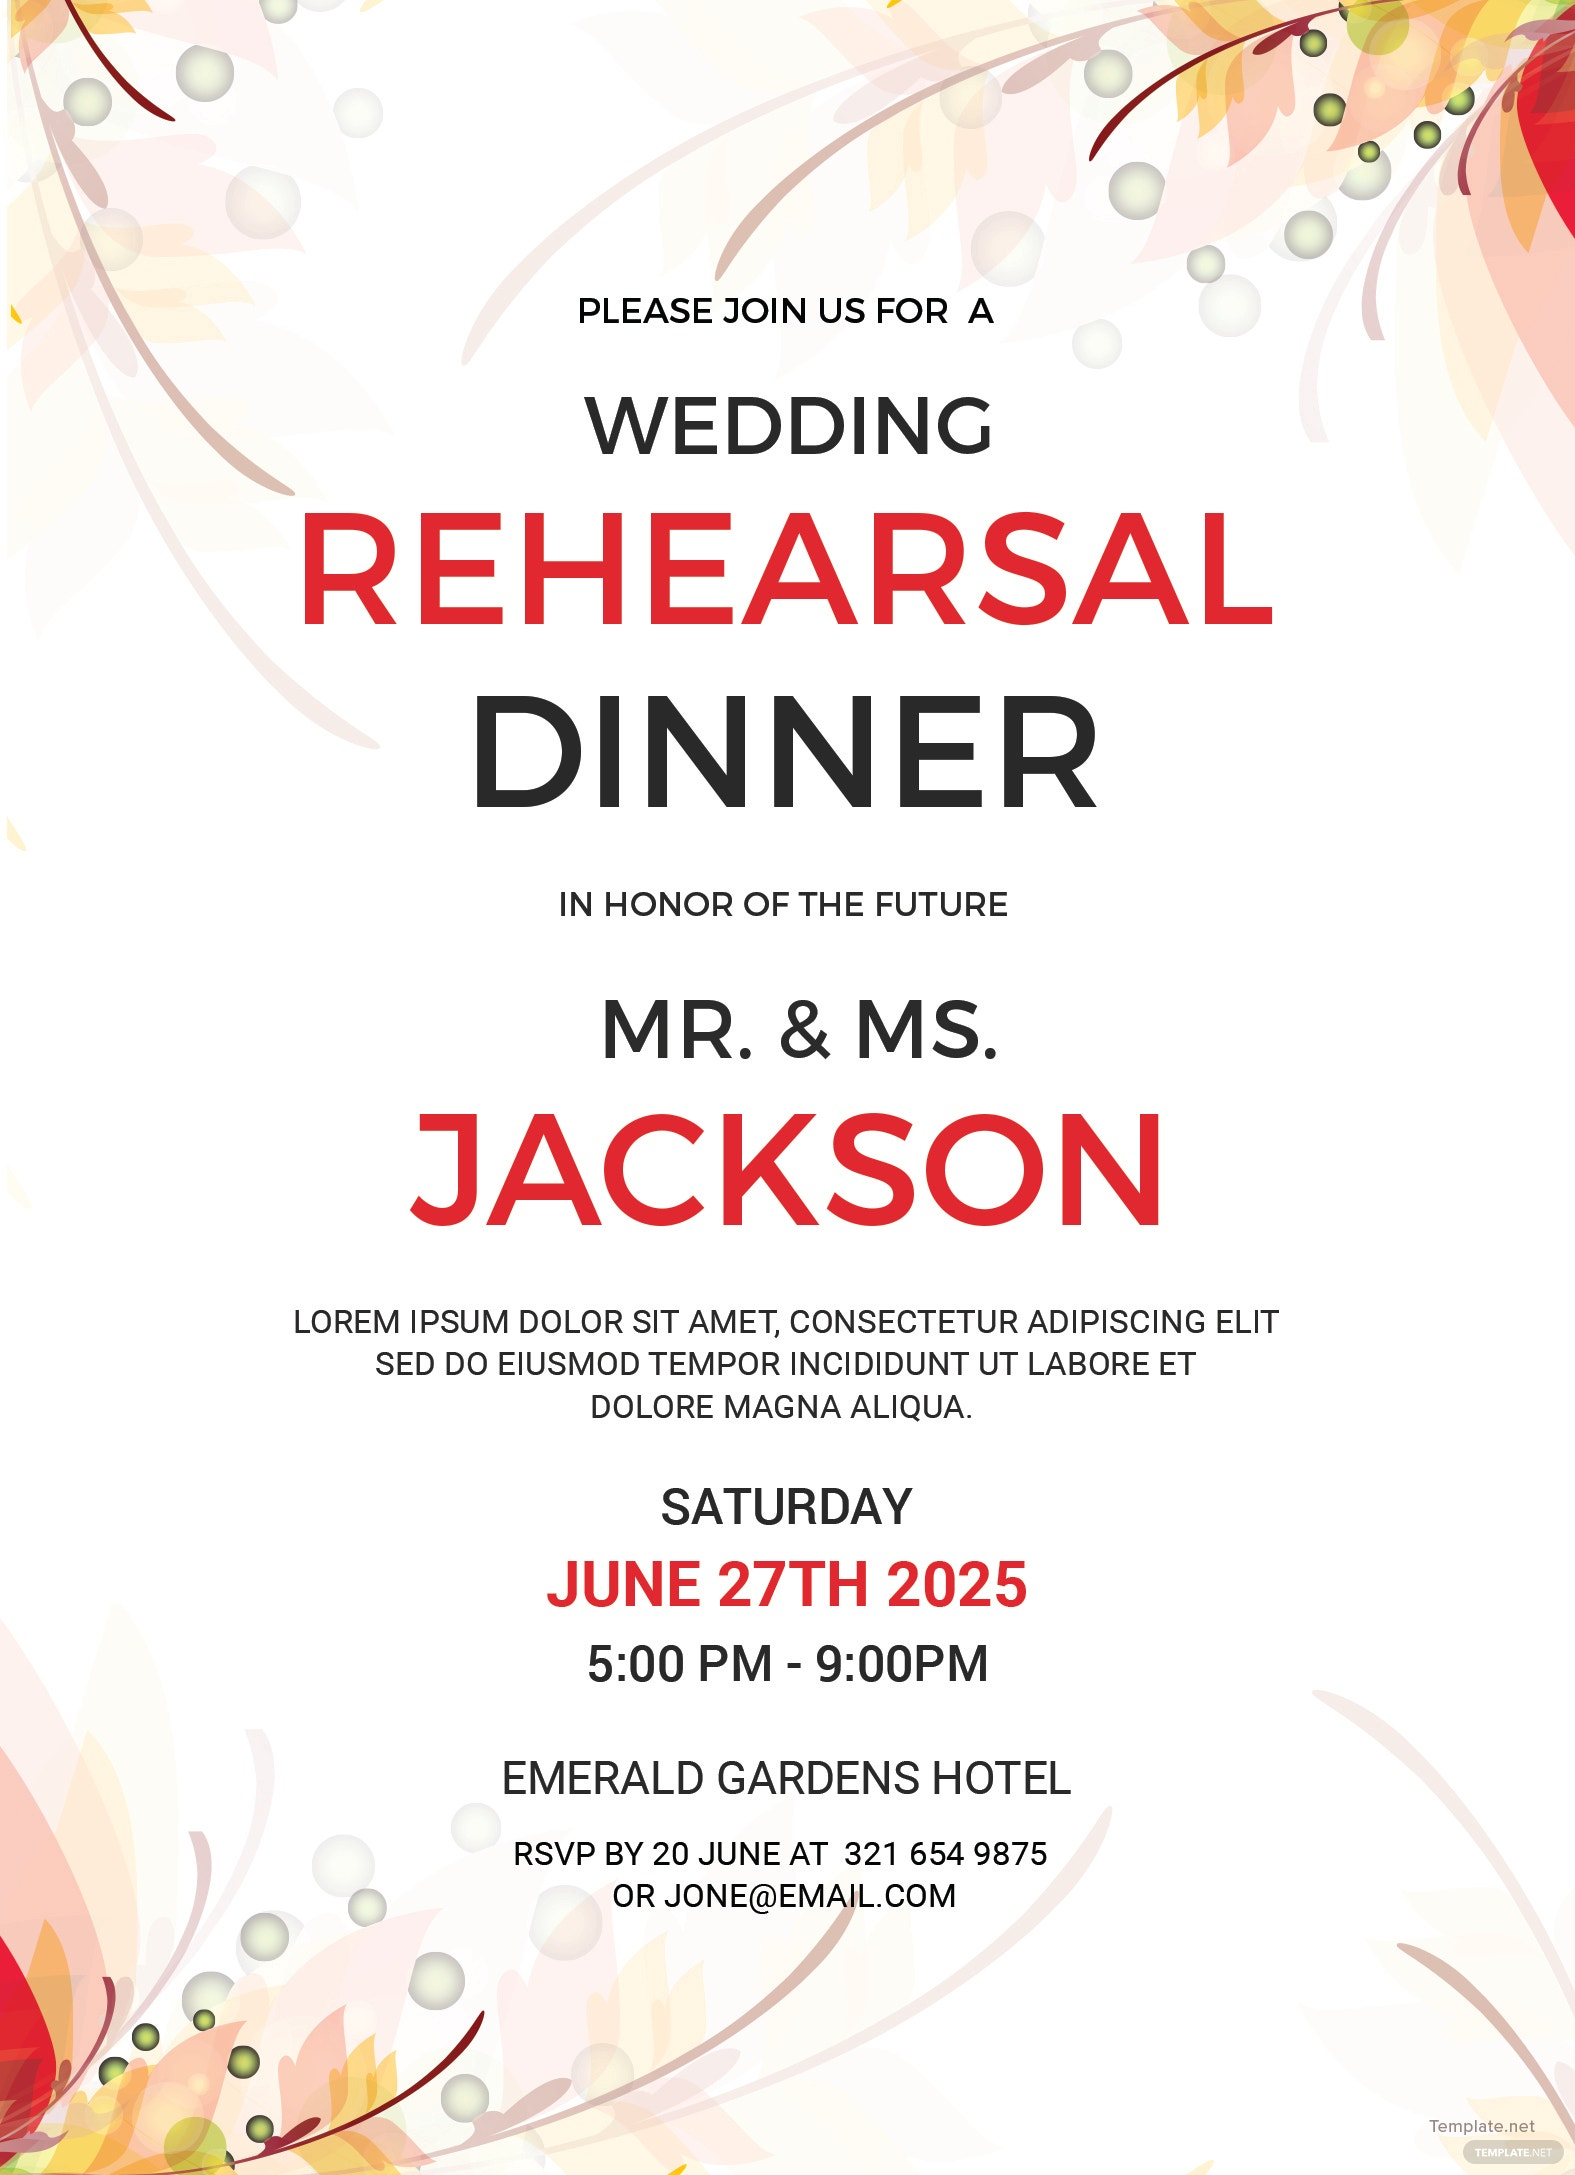 Wedding Rehearsal Party Invitation Template in Adobe Photoshop ...